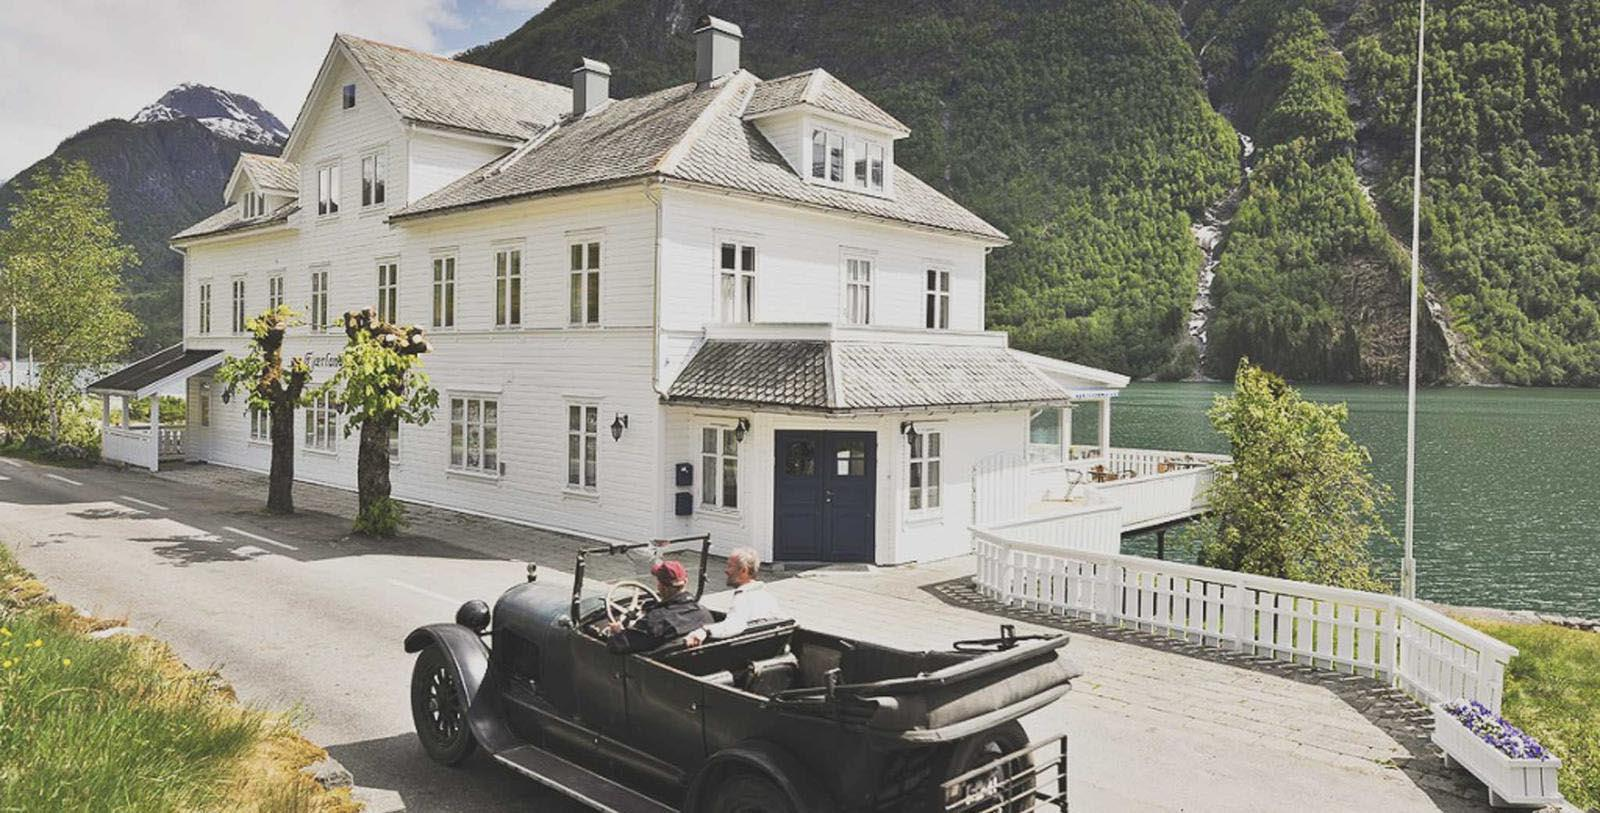 Image of Hotel Exterior Fjaerland Fjordstove Hotel & Restaurant, 1937, Member of Historic Hotels Worldwide, in Fjærland, Norway, Discover